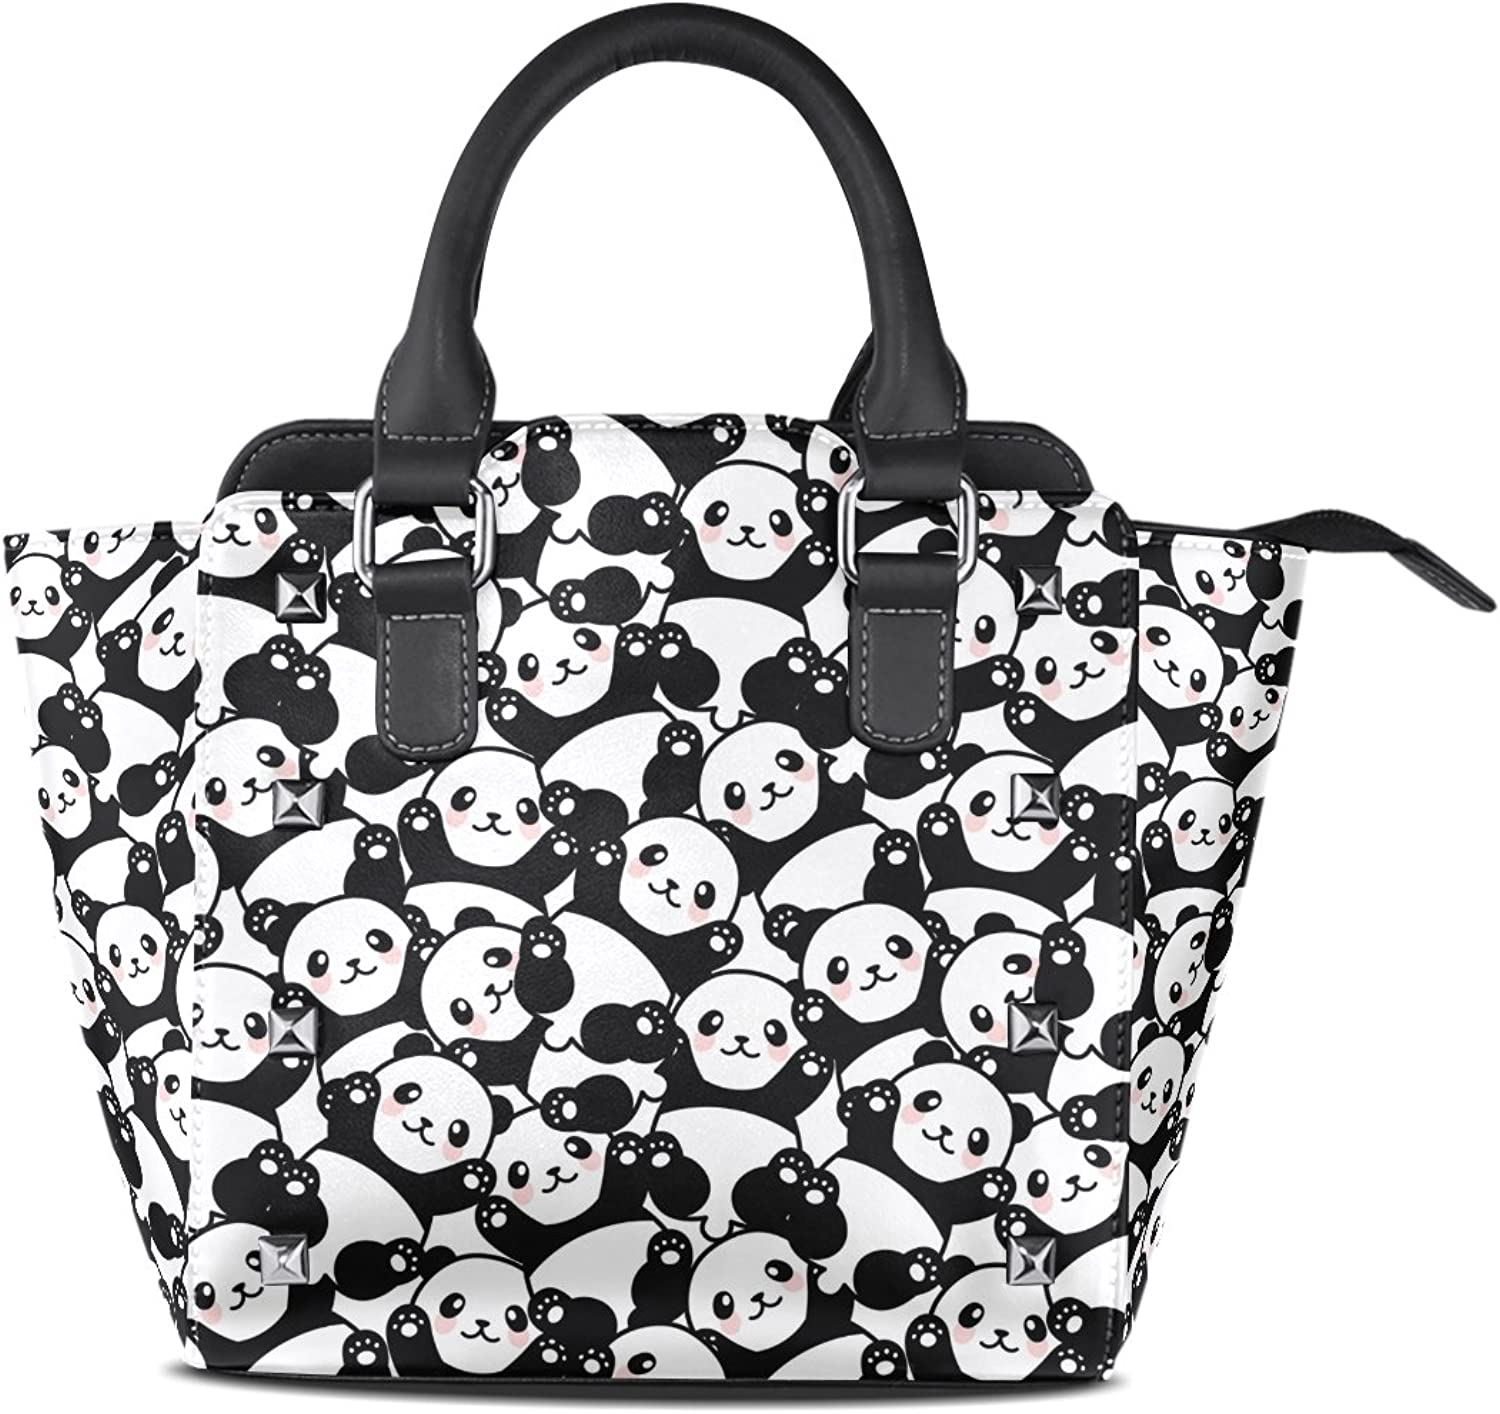 My Little Nest Women's Top Handle Satchel Handbag Cute Panda Pattern Ladies PU Leather Shoulder Bag Crossbody Bag